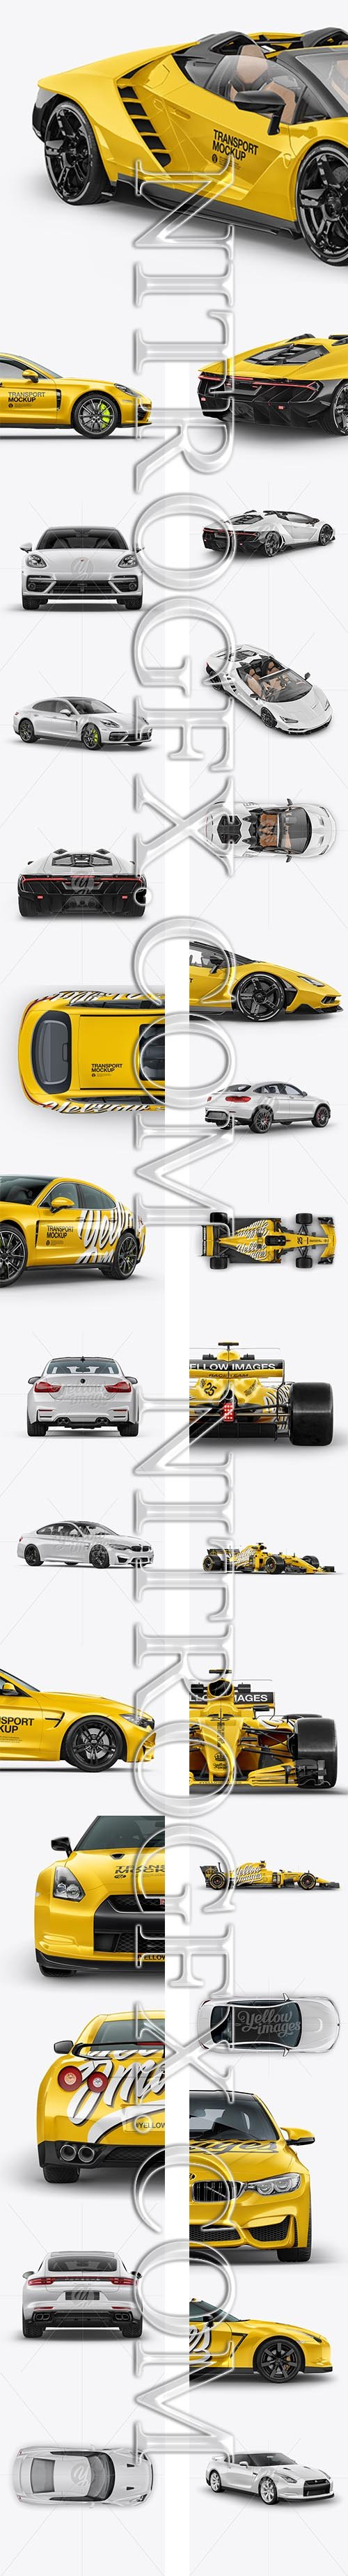 Big Pack with Cars Mockup Formula 1, BMW M4, Nissan GTR, Porsche Panamera 4 E-Hybrid, Coupe Crossover SUV Mockup